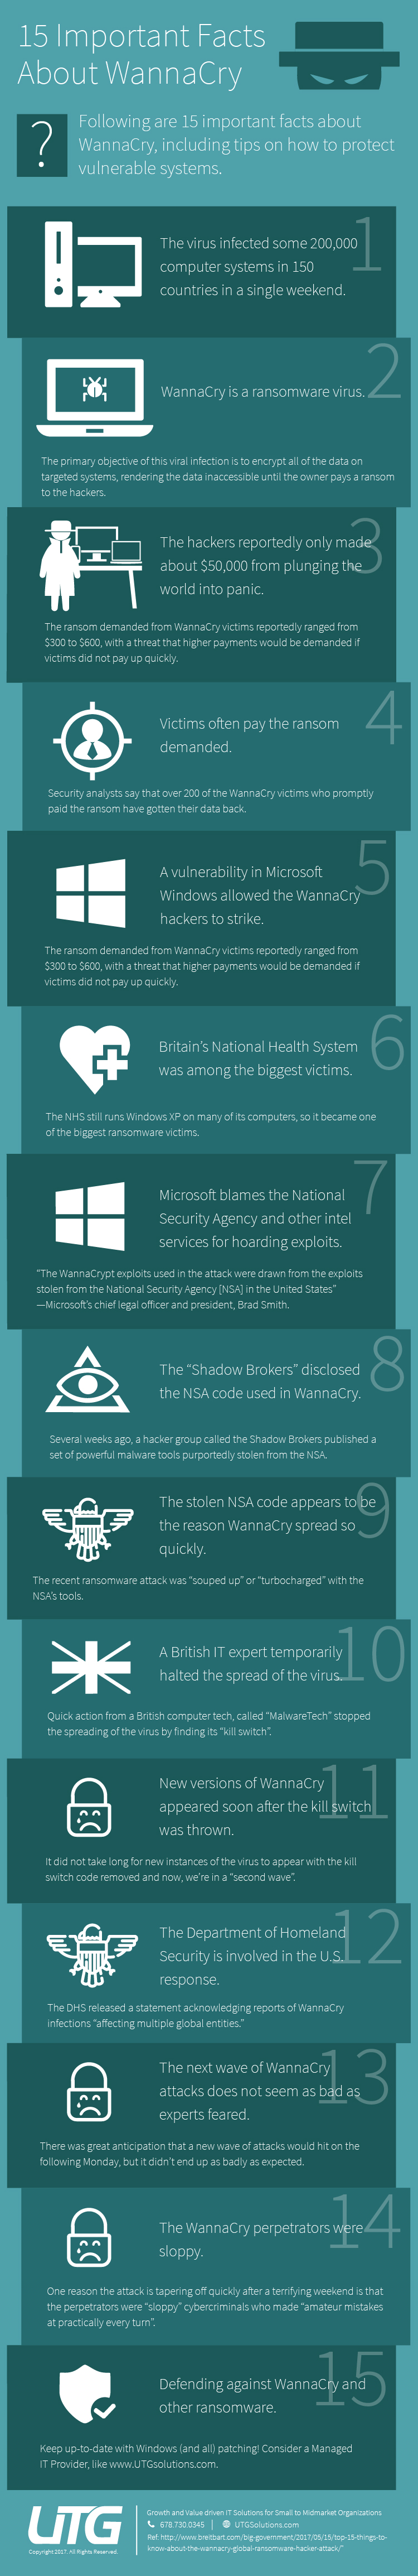 15 Important Facts About WannaCry